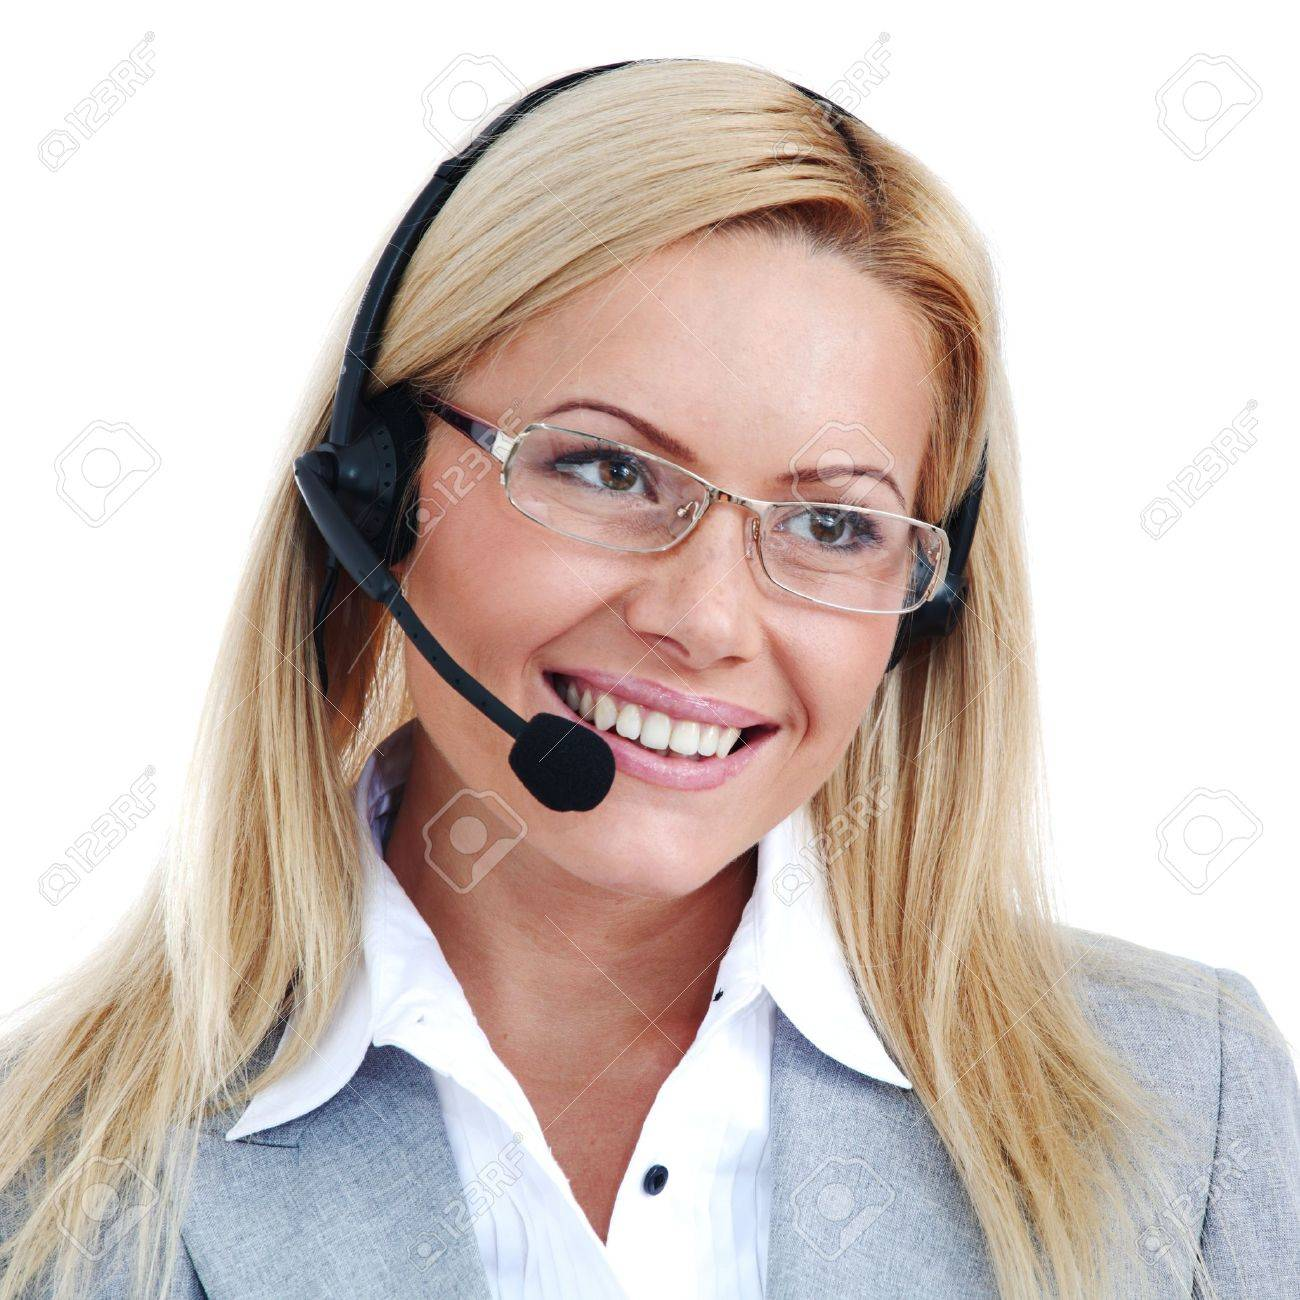 woman call with headset close portrait Stock Photo - 8744124